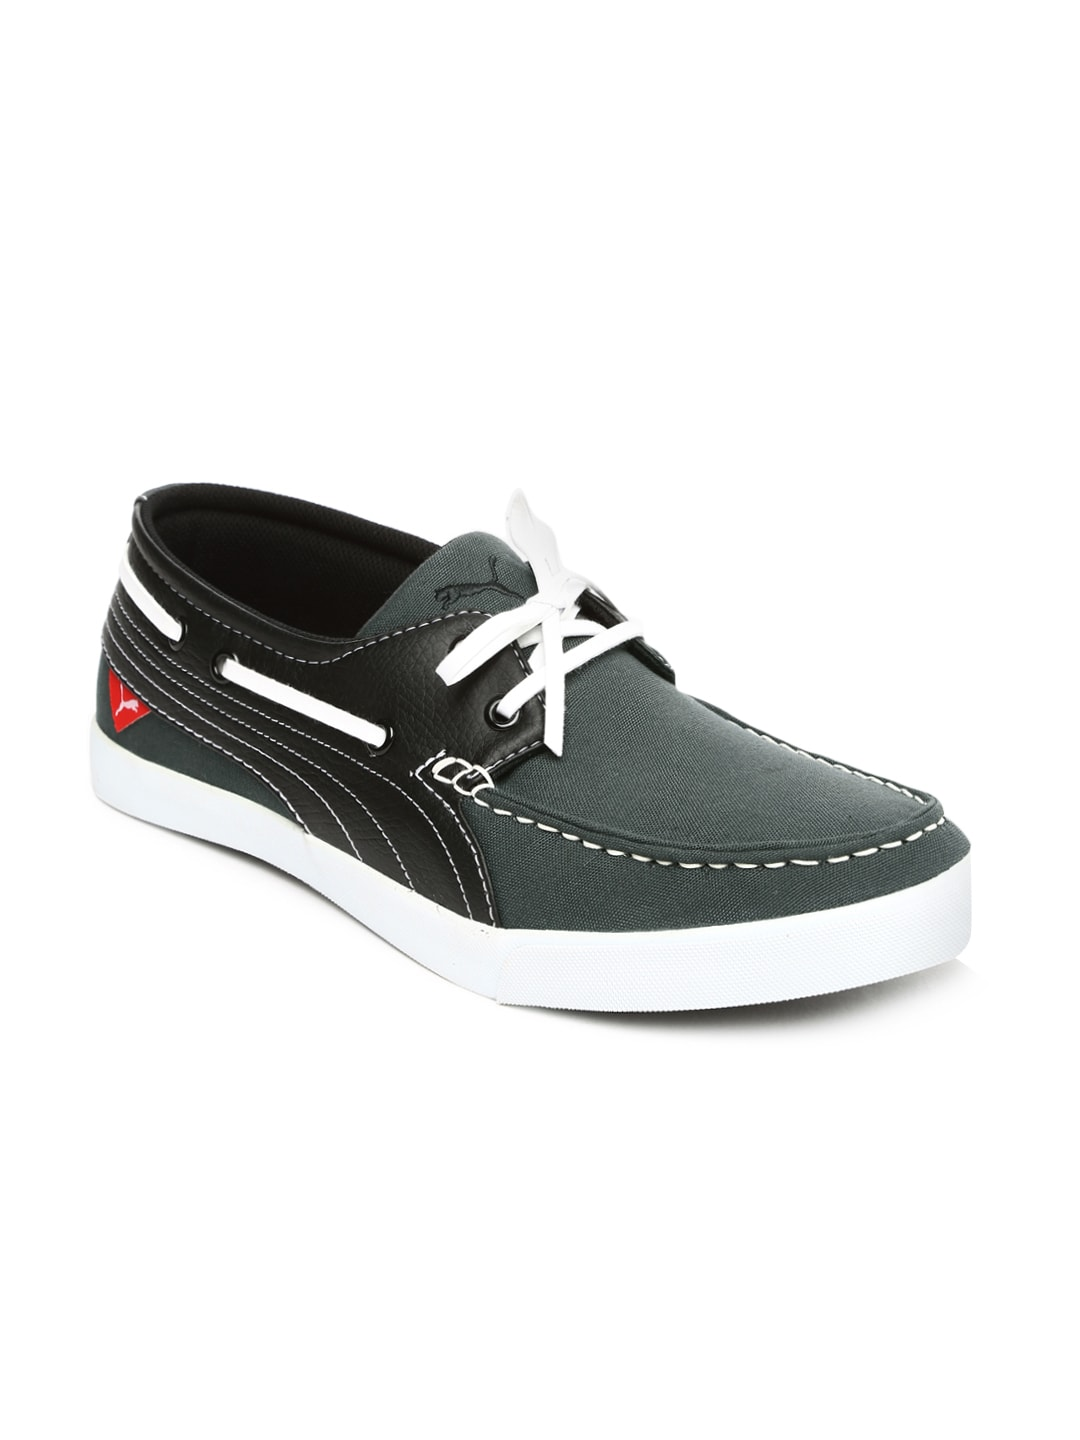 da7a7bf55265 Puma 35952902 Men Black And Grey Yacht Syn Dp Boat Shoes- Price in India